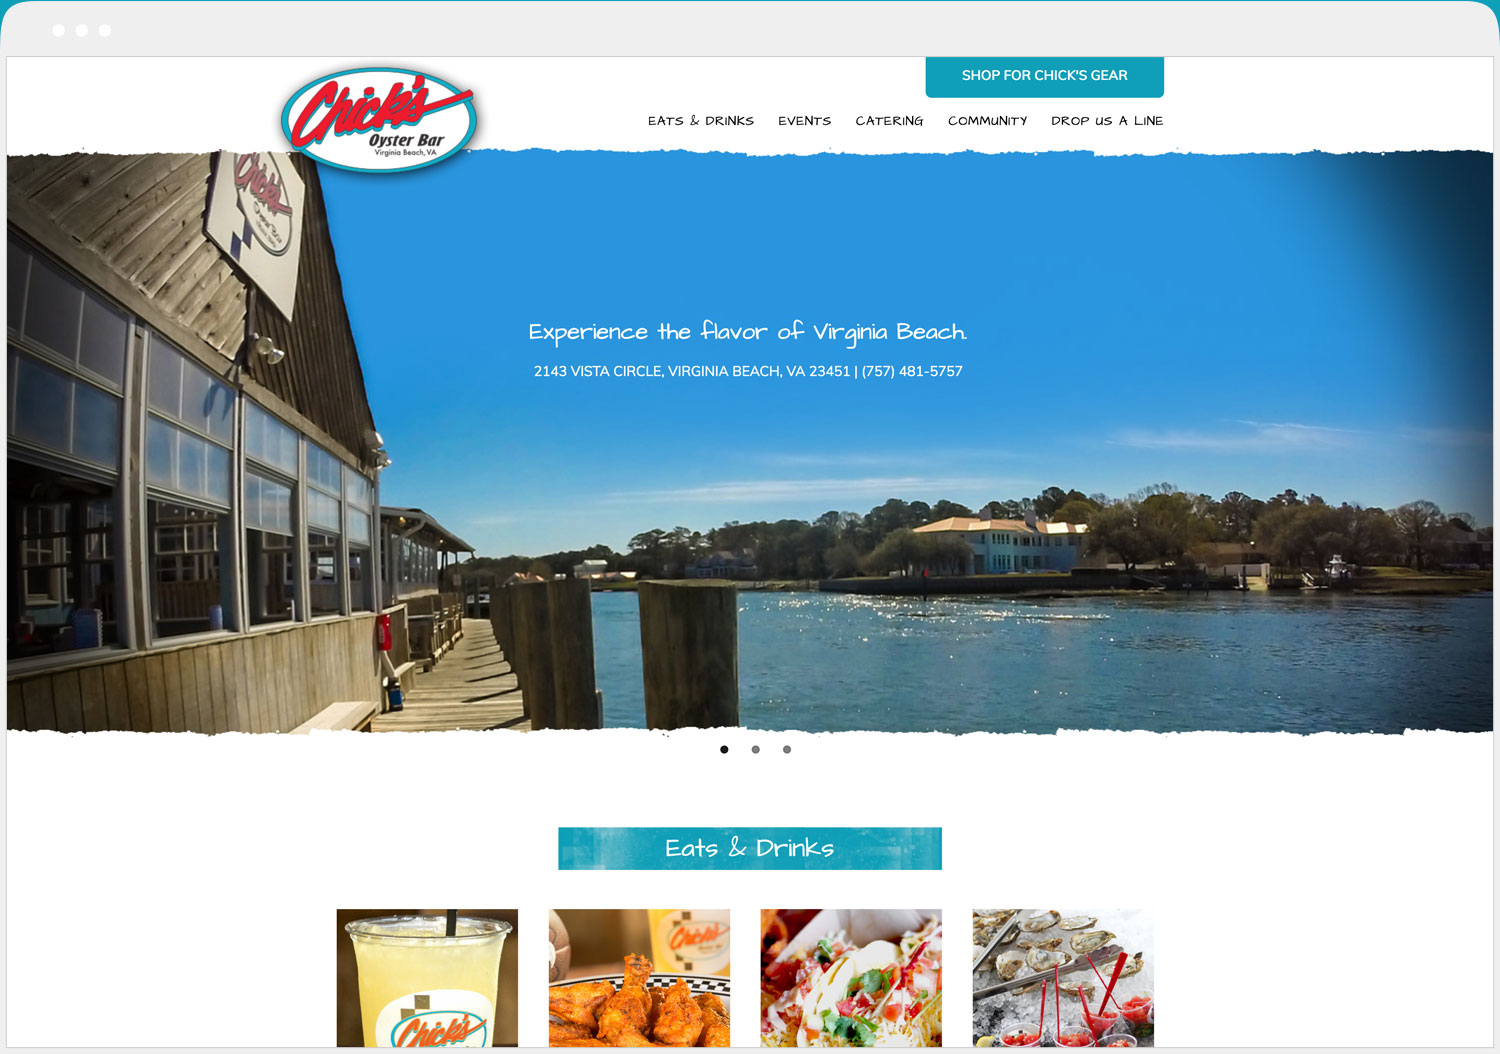 Chick's Oyster Bar website desktop view